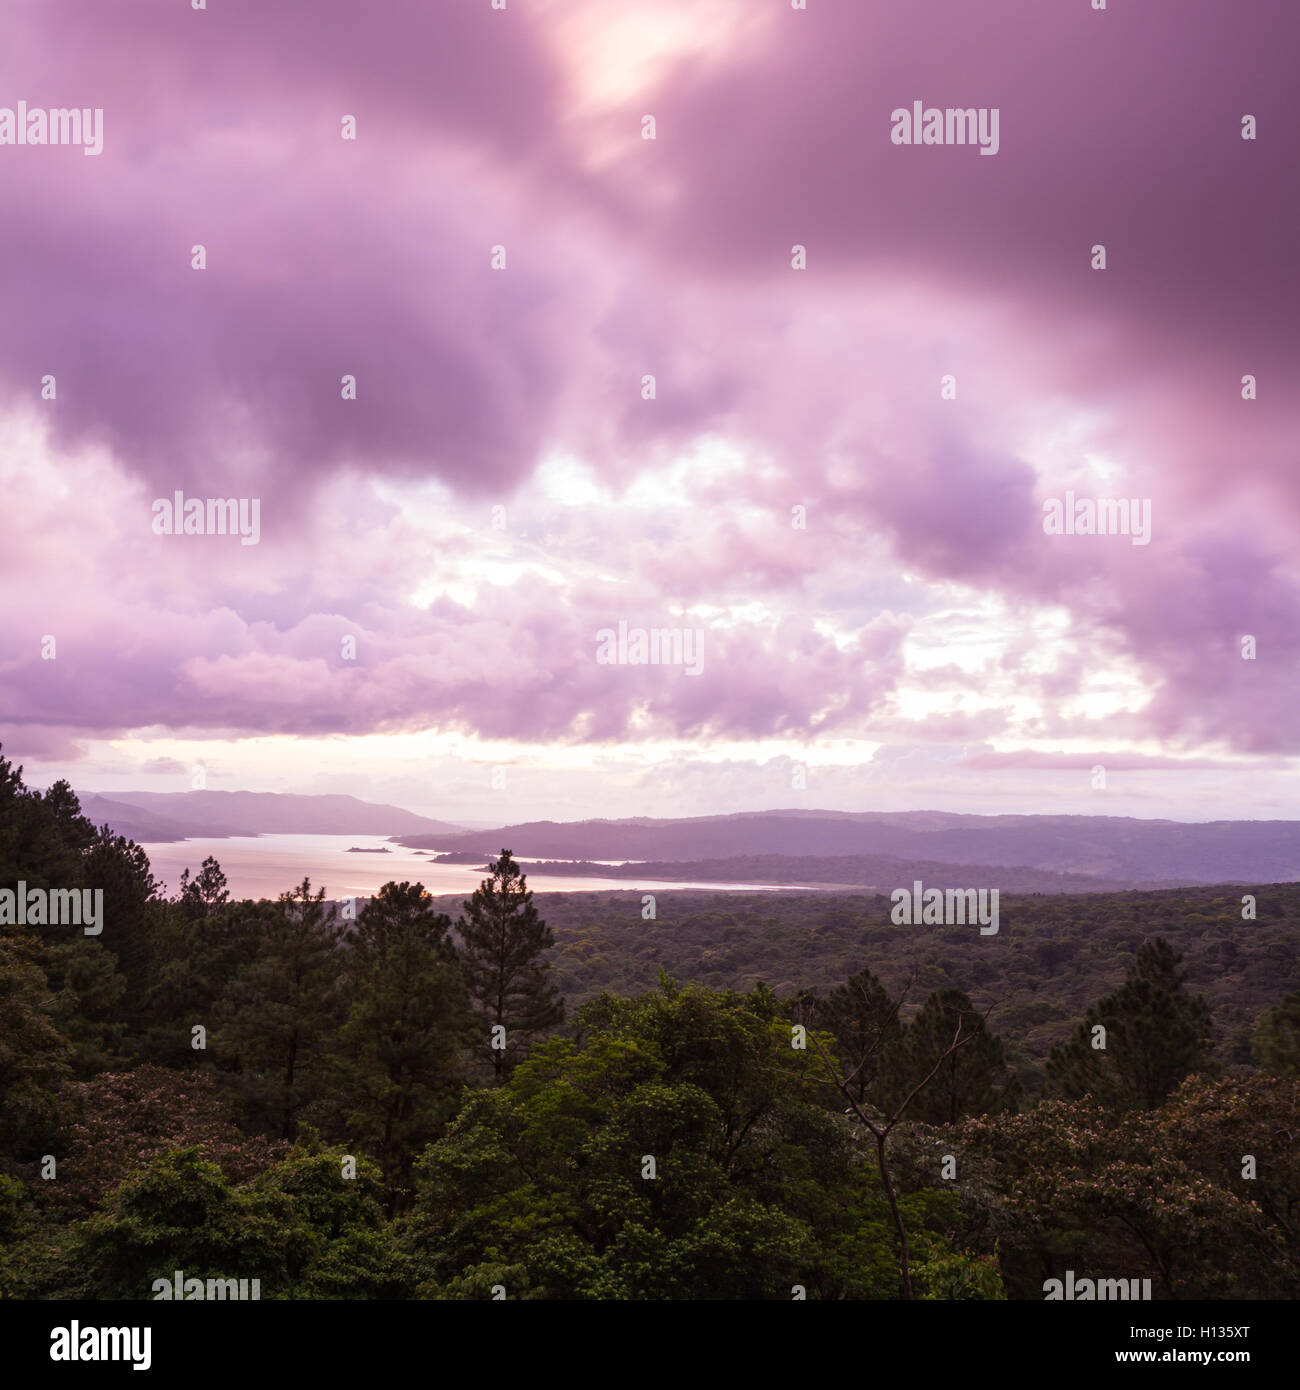 sunsetting behind Lake Arenal viewed from an elevated viewpoint above the tree tops - Stock Image